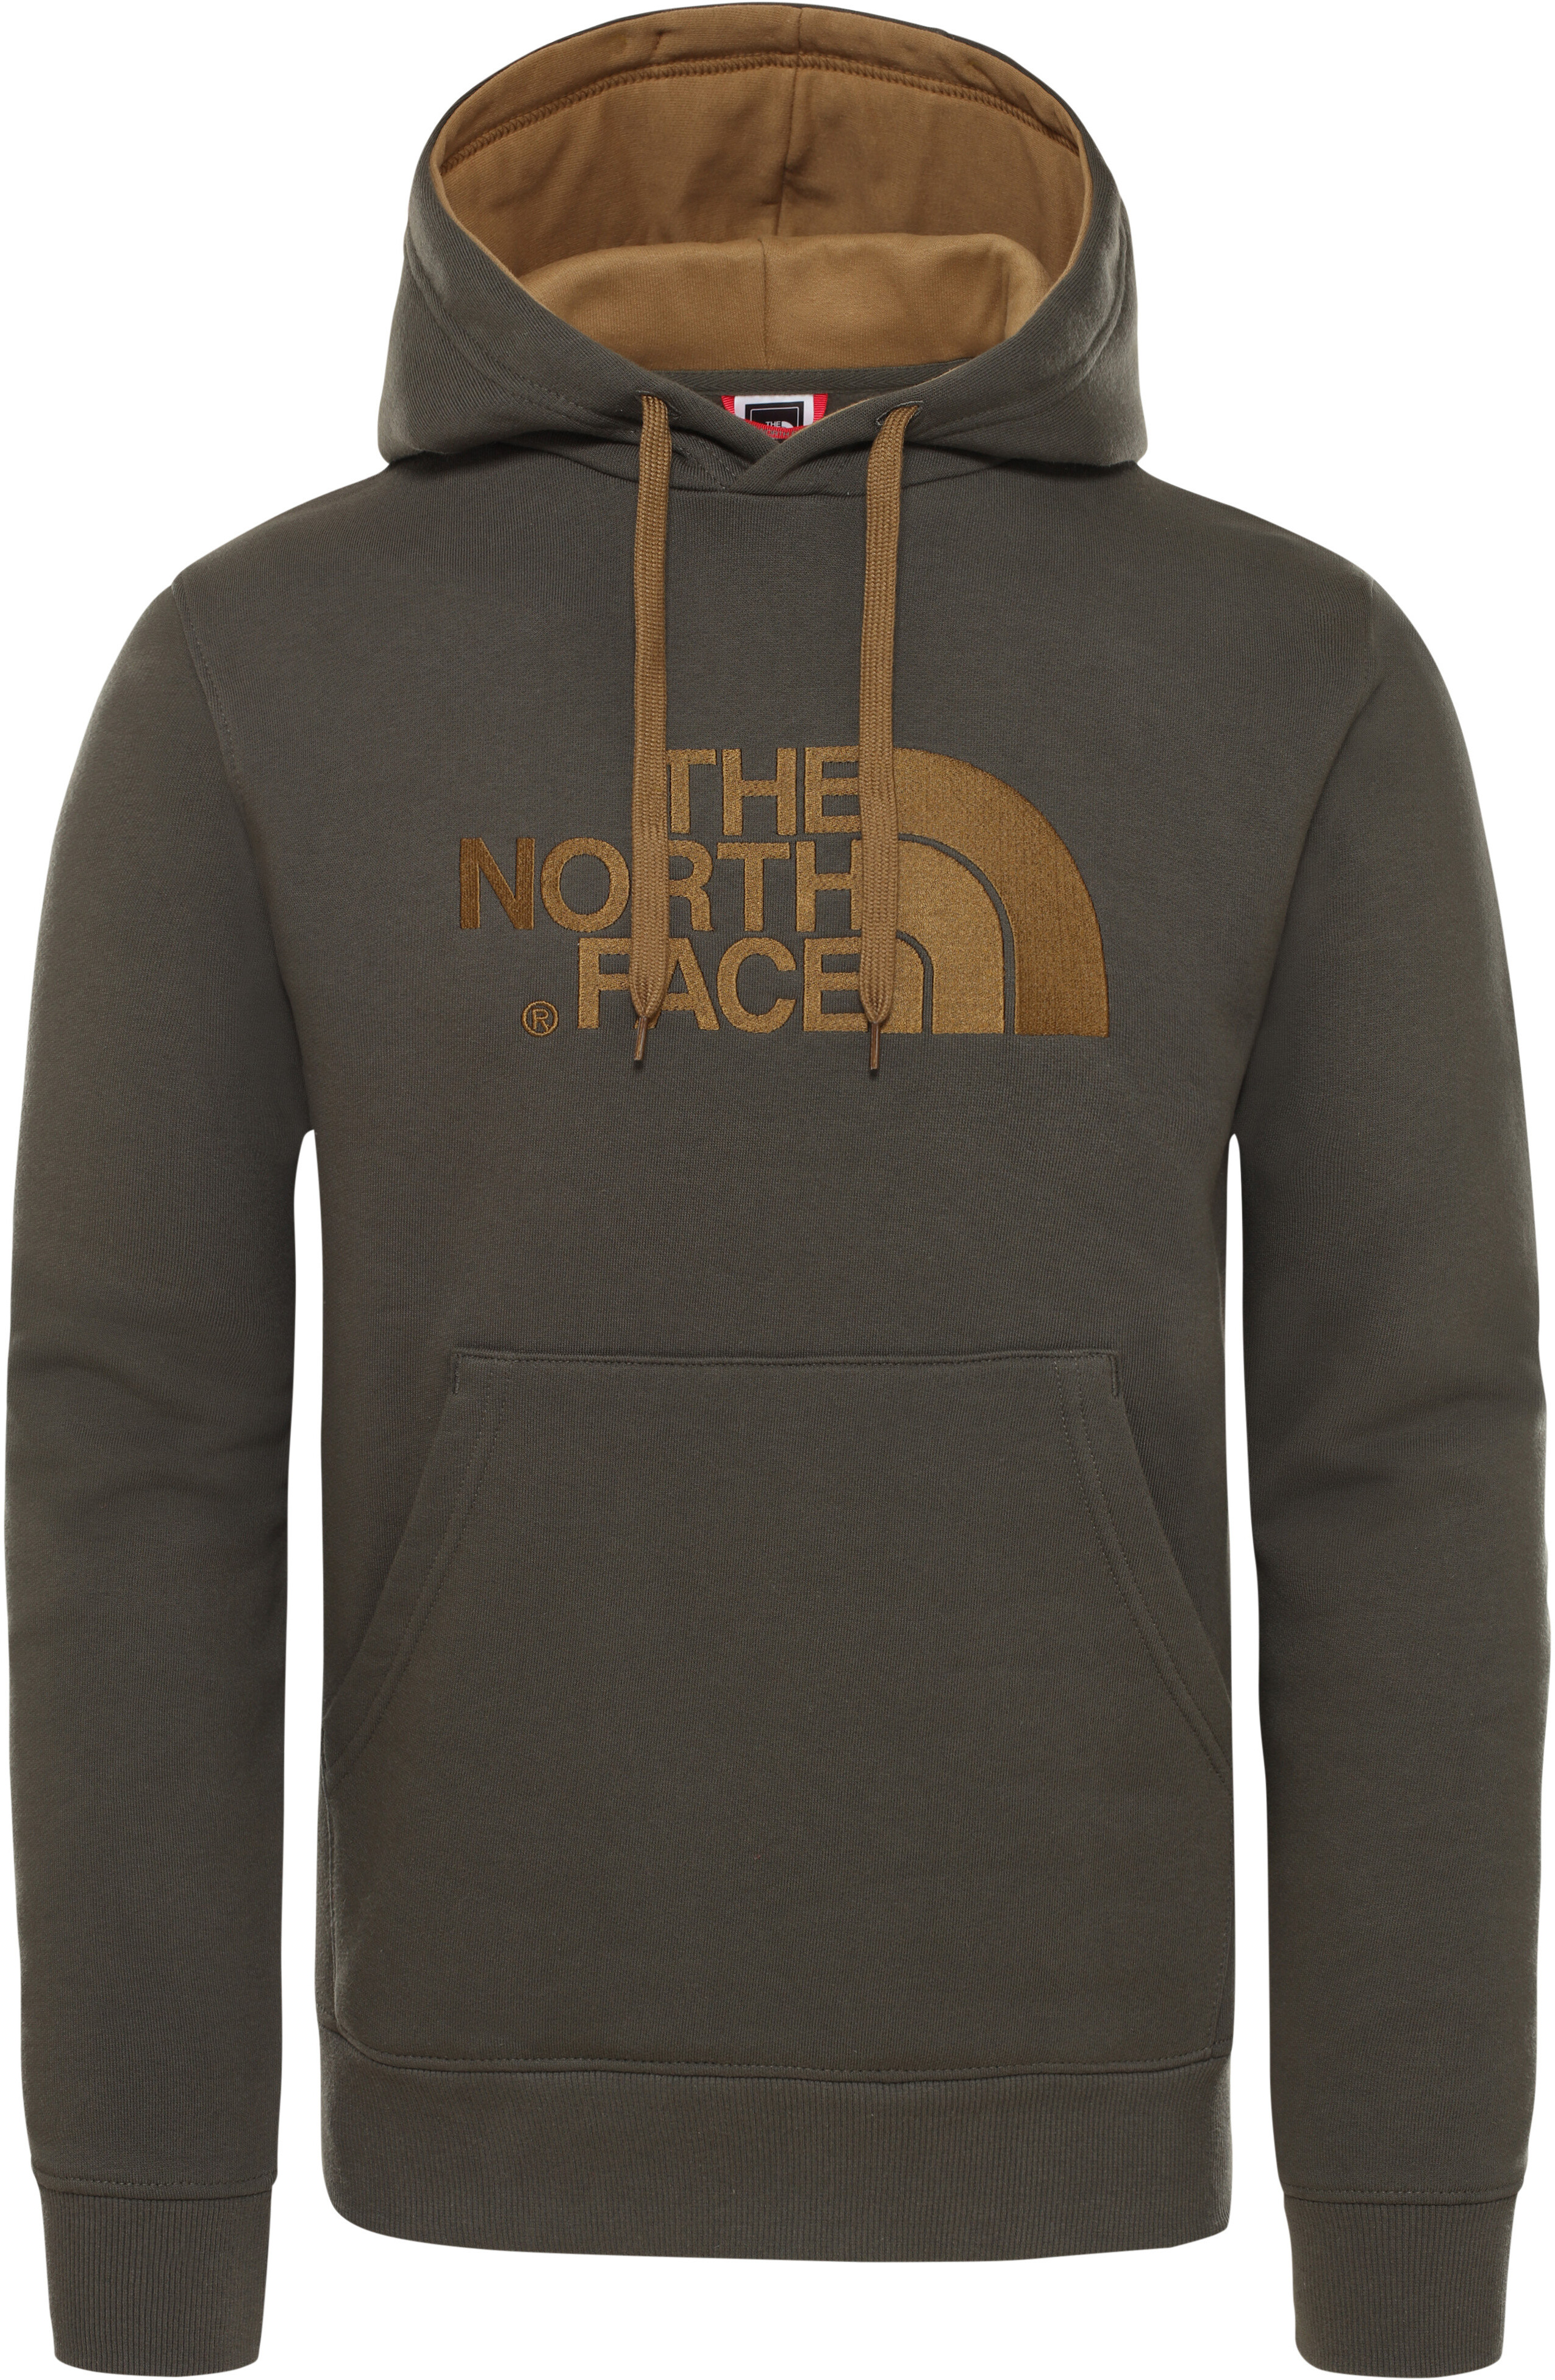 big sale 38193 a0626 The North Face Drew Peak Pullover Hoodie Herren new taupe green/britsh khaki